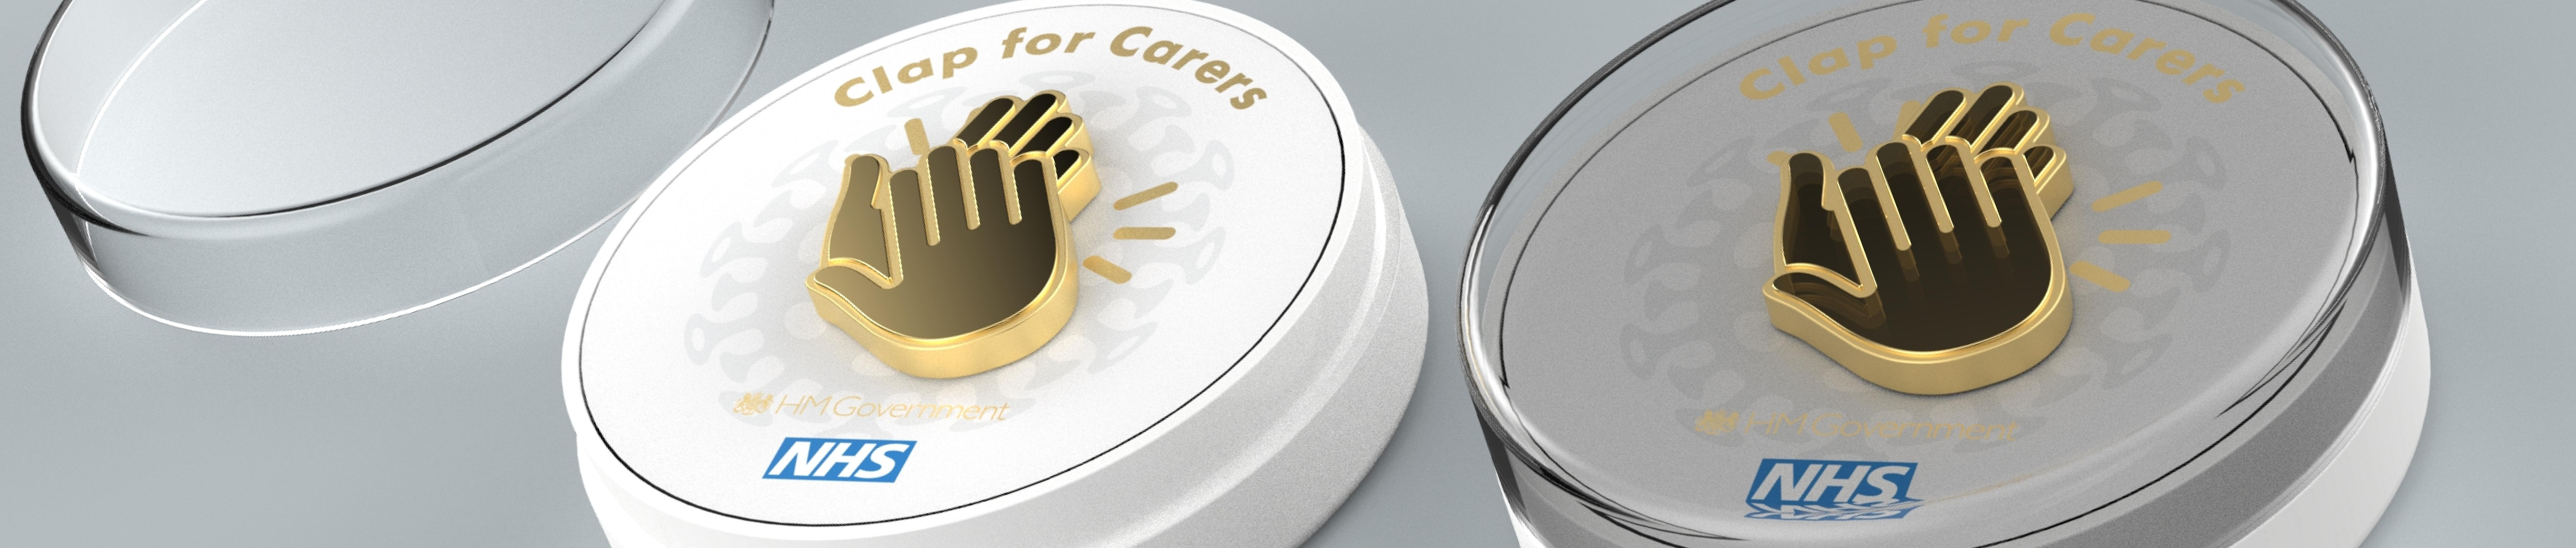 'Clap for carers' Pin Badge